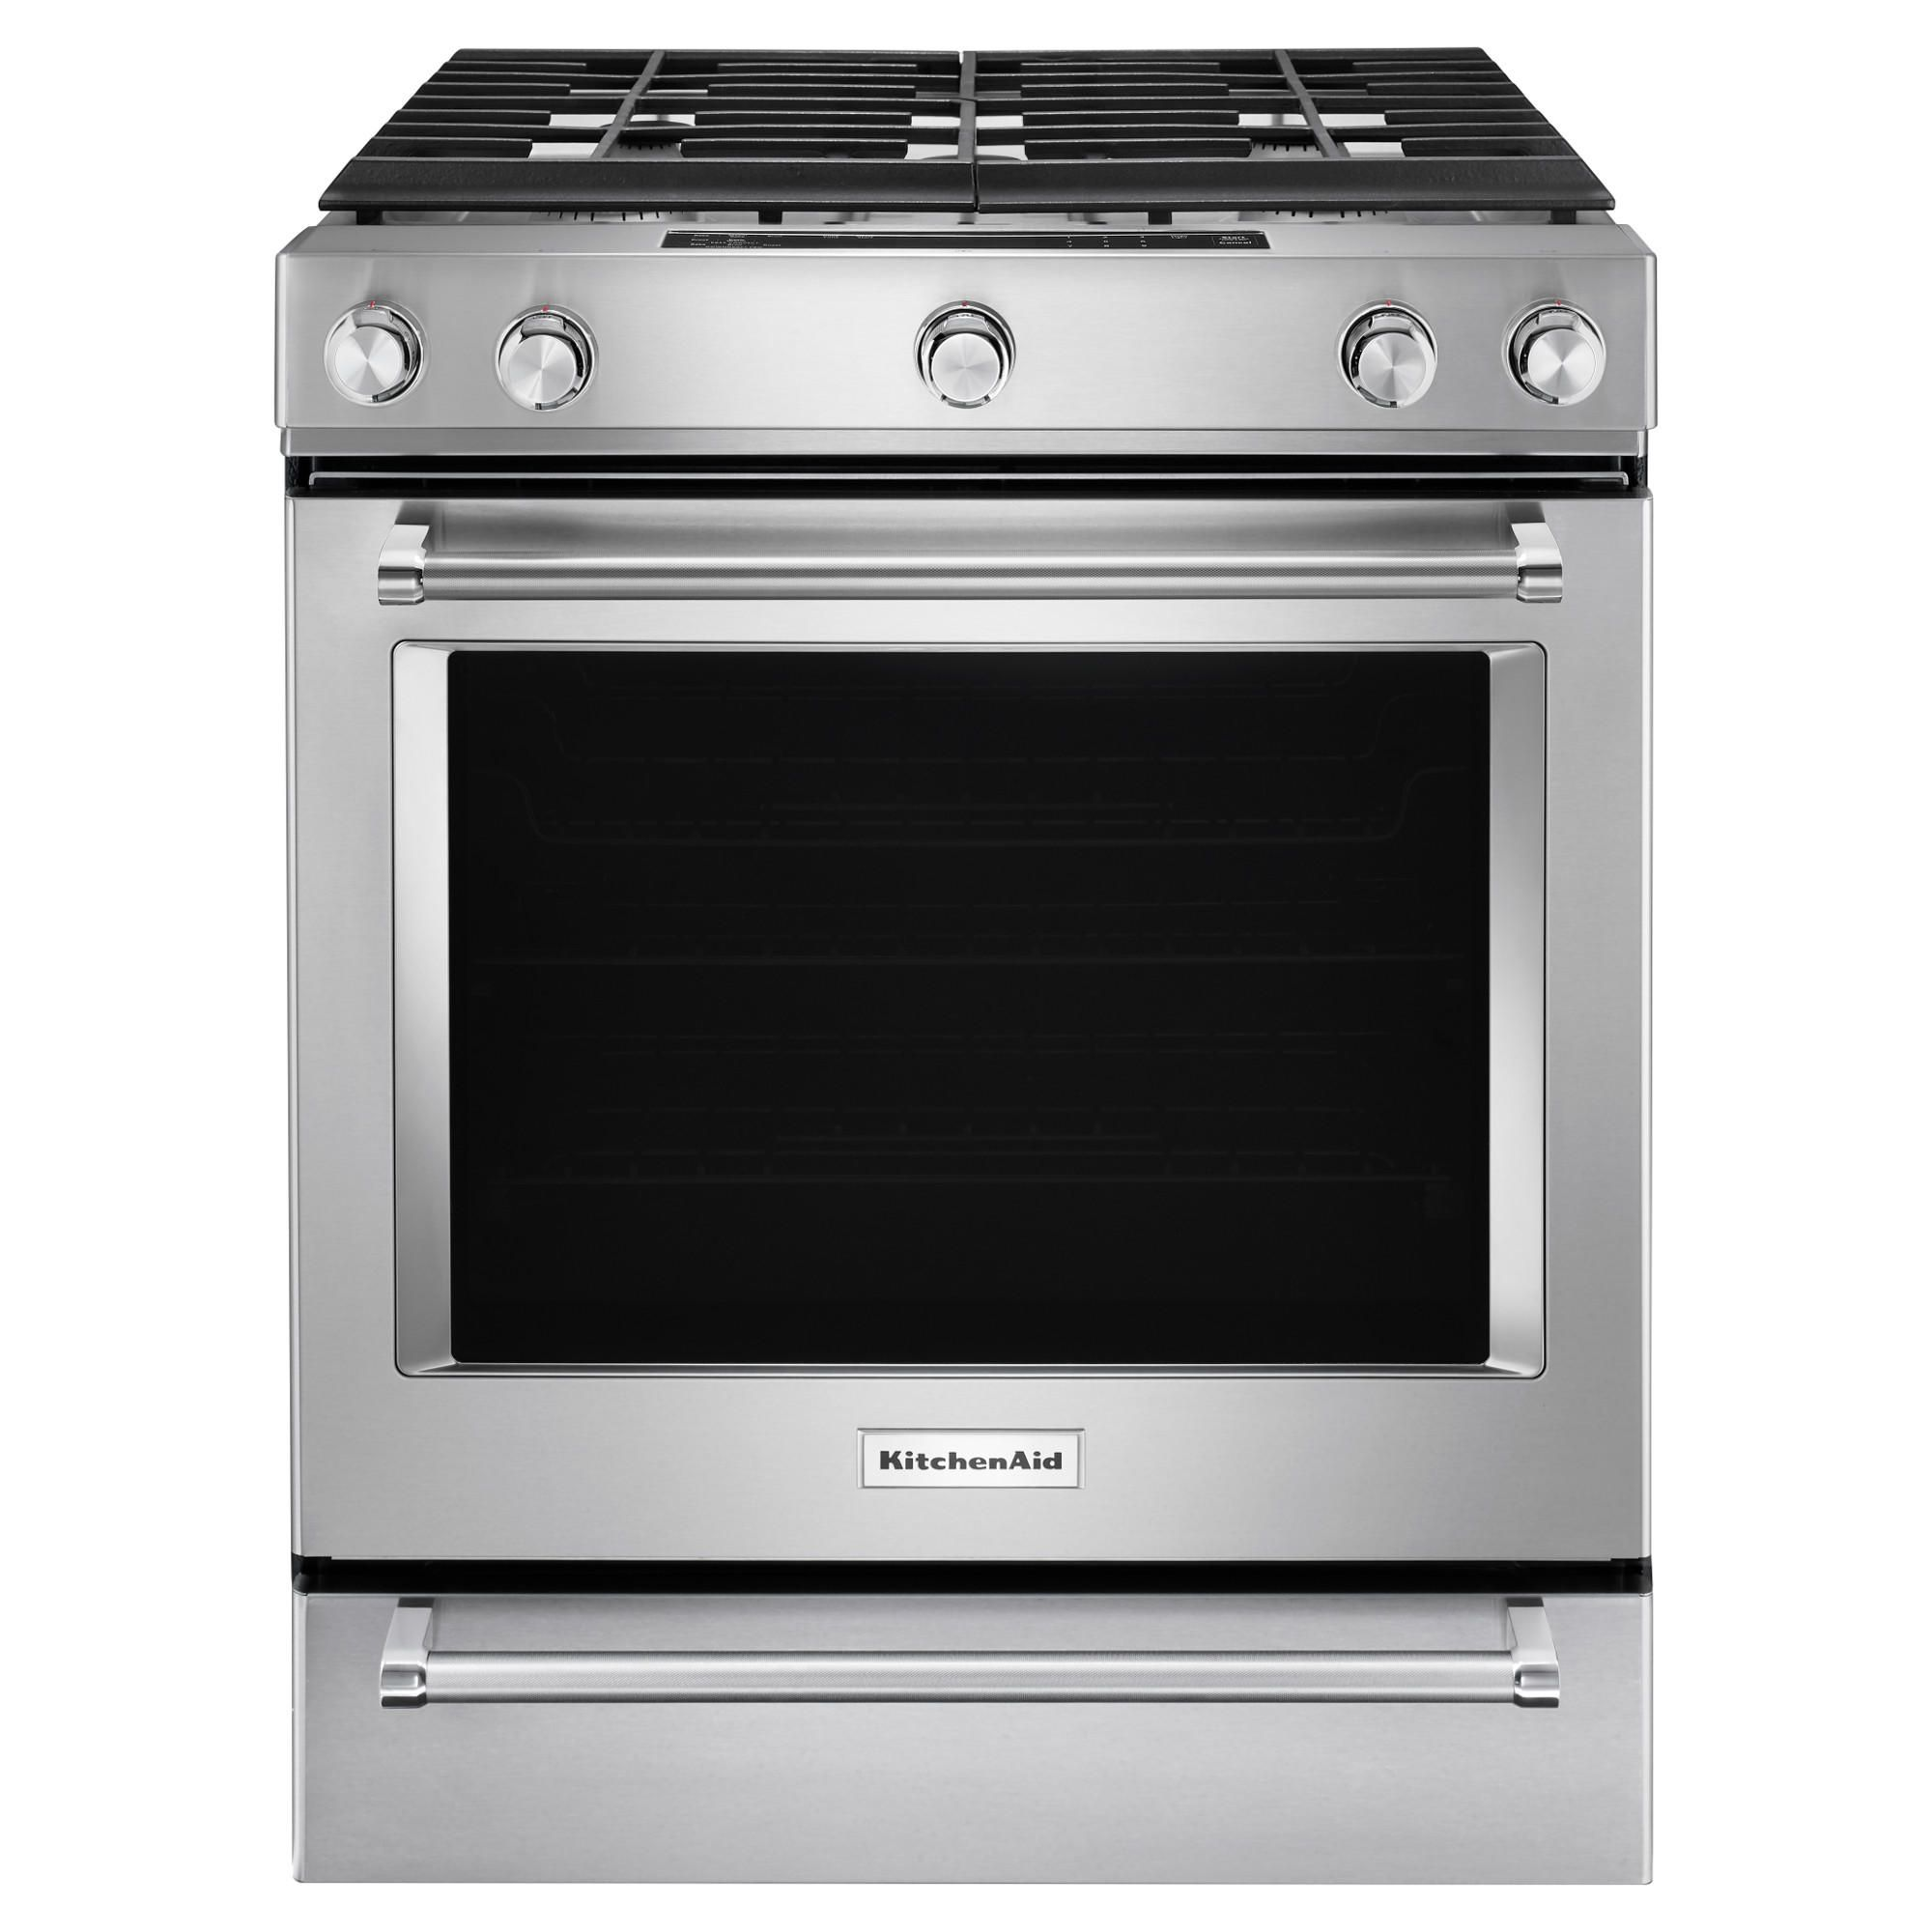 kitchenaid 30 inch 5 burner gas convection slide in range altura rh pinterest com